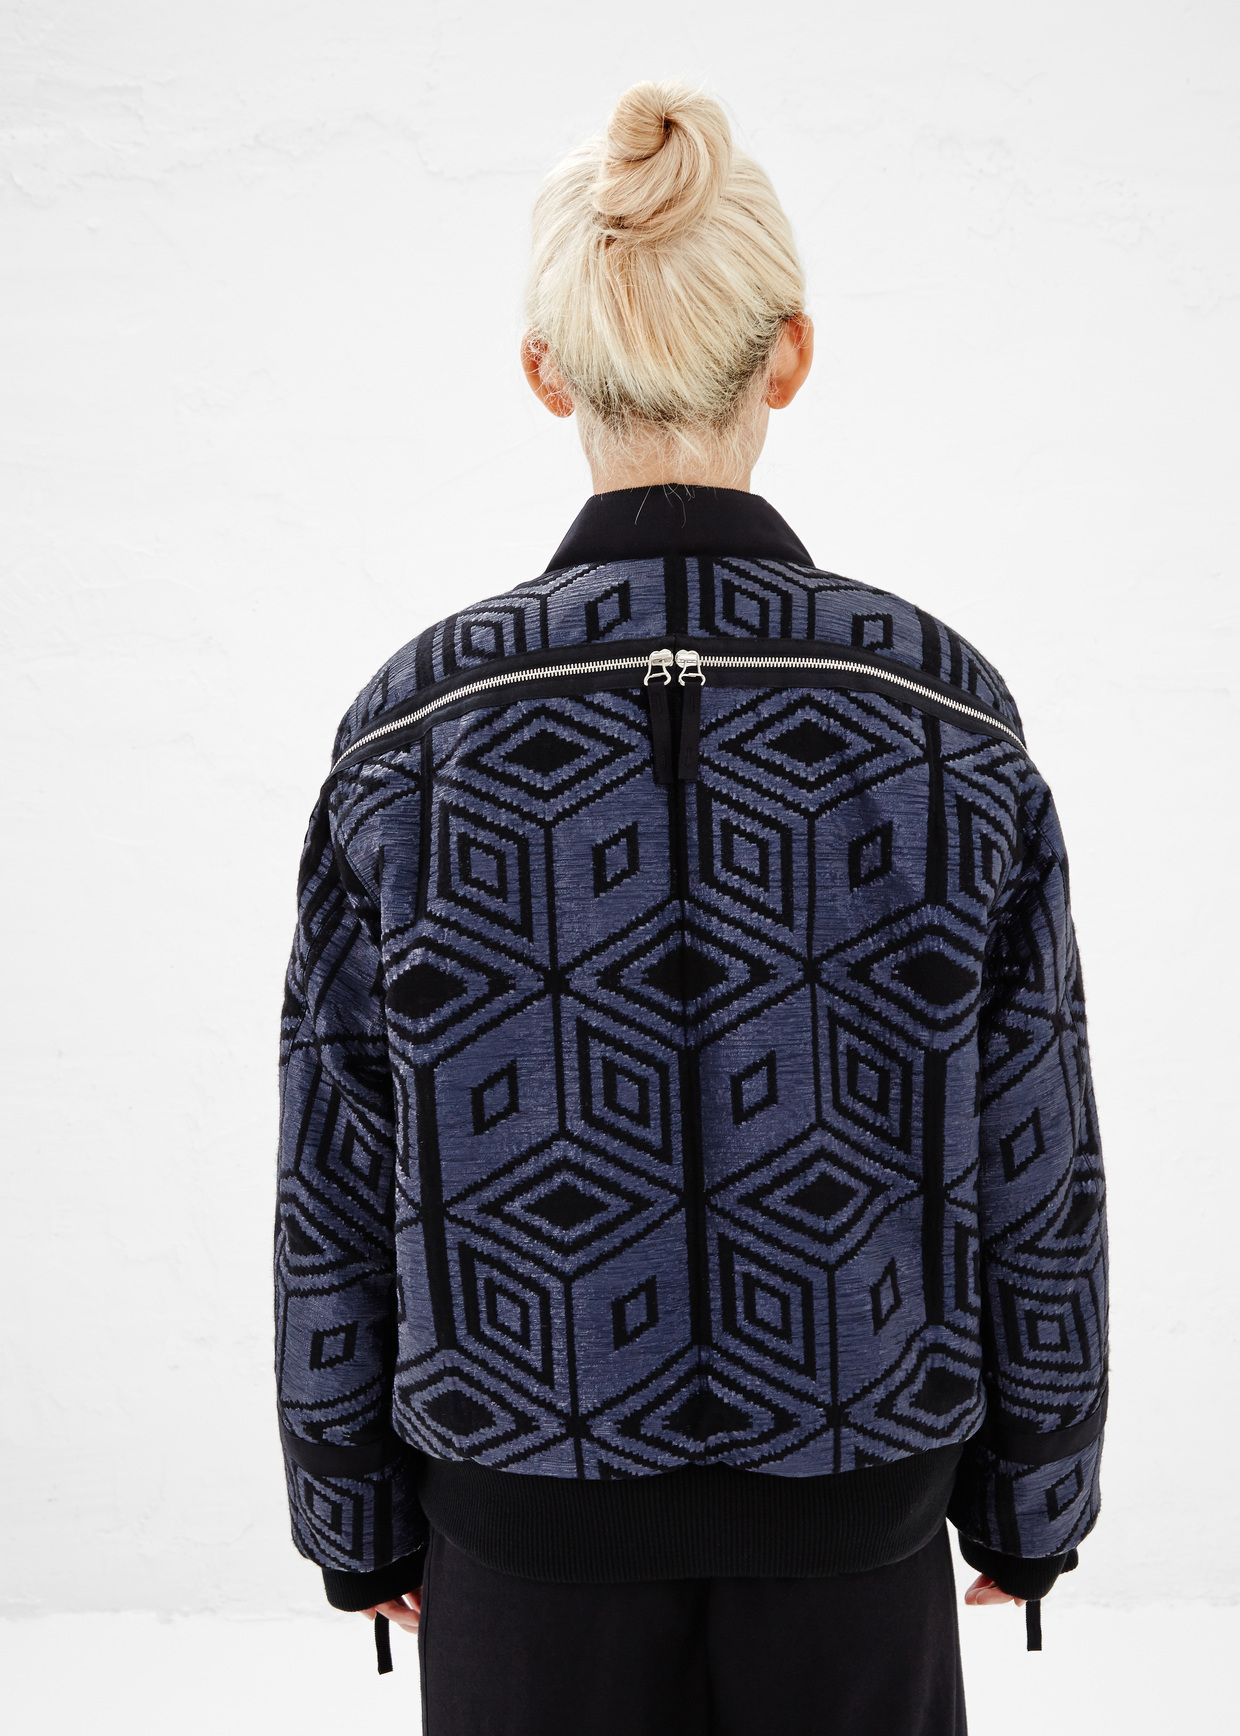 Longsleeved jacket in a glossy blue and black wool blend